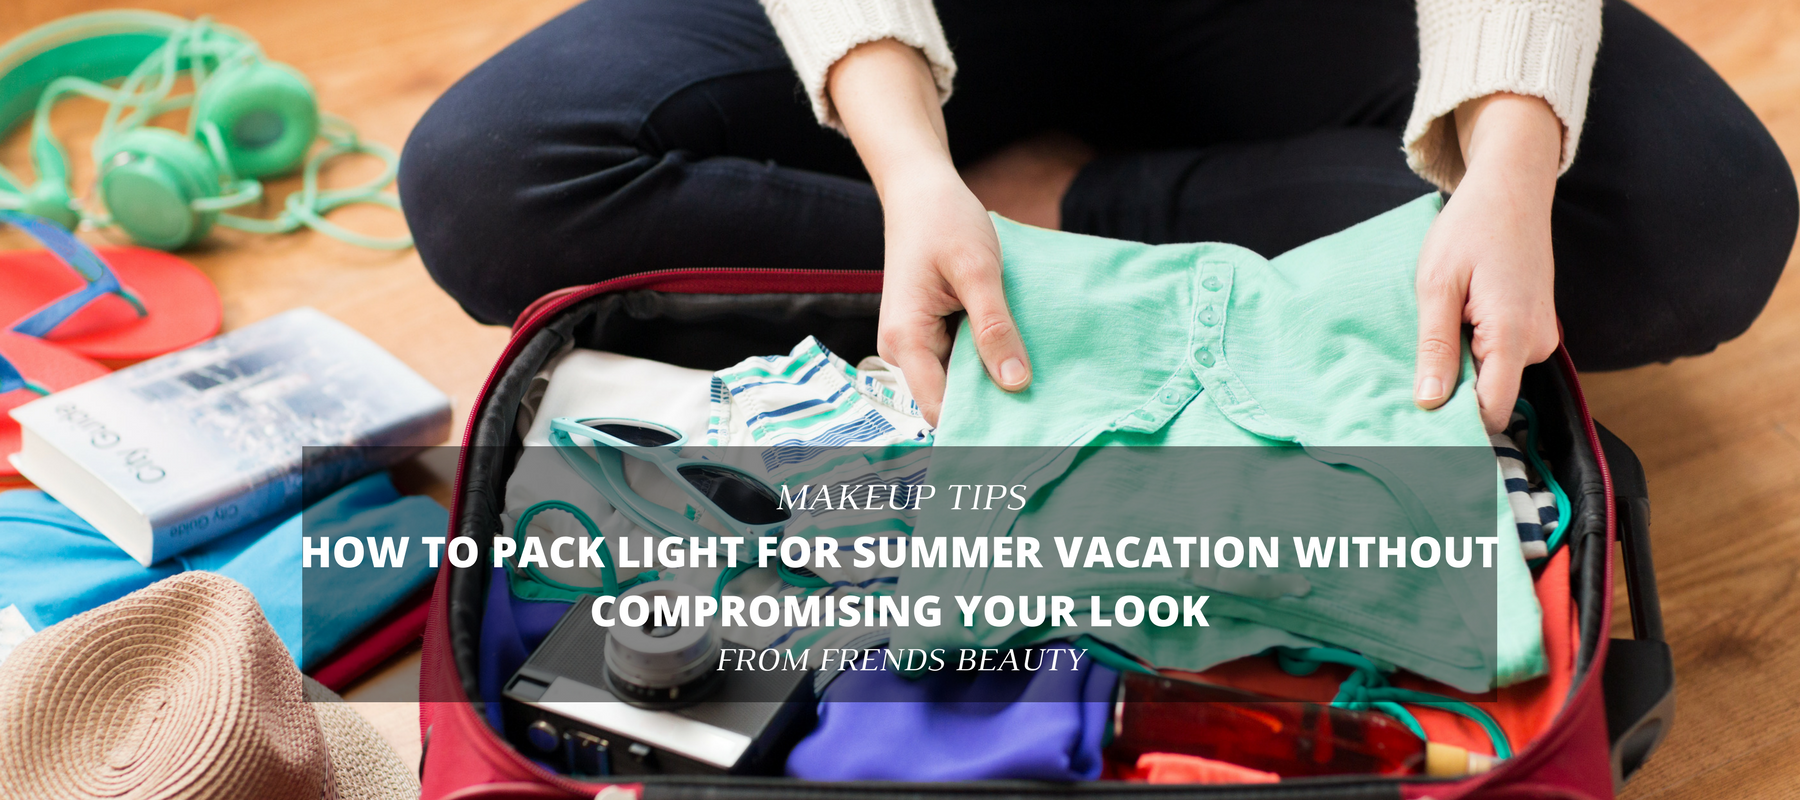 Beauty Tips For Vacation